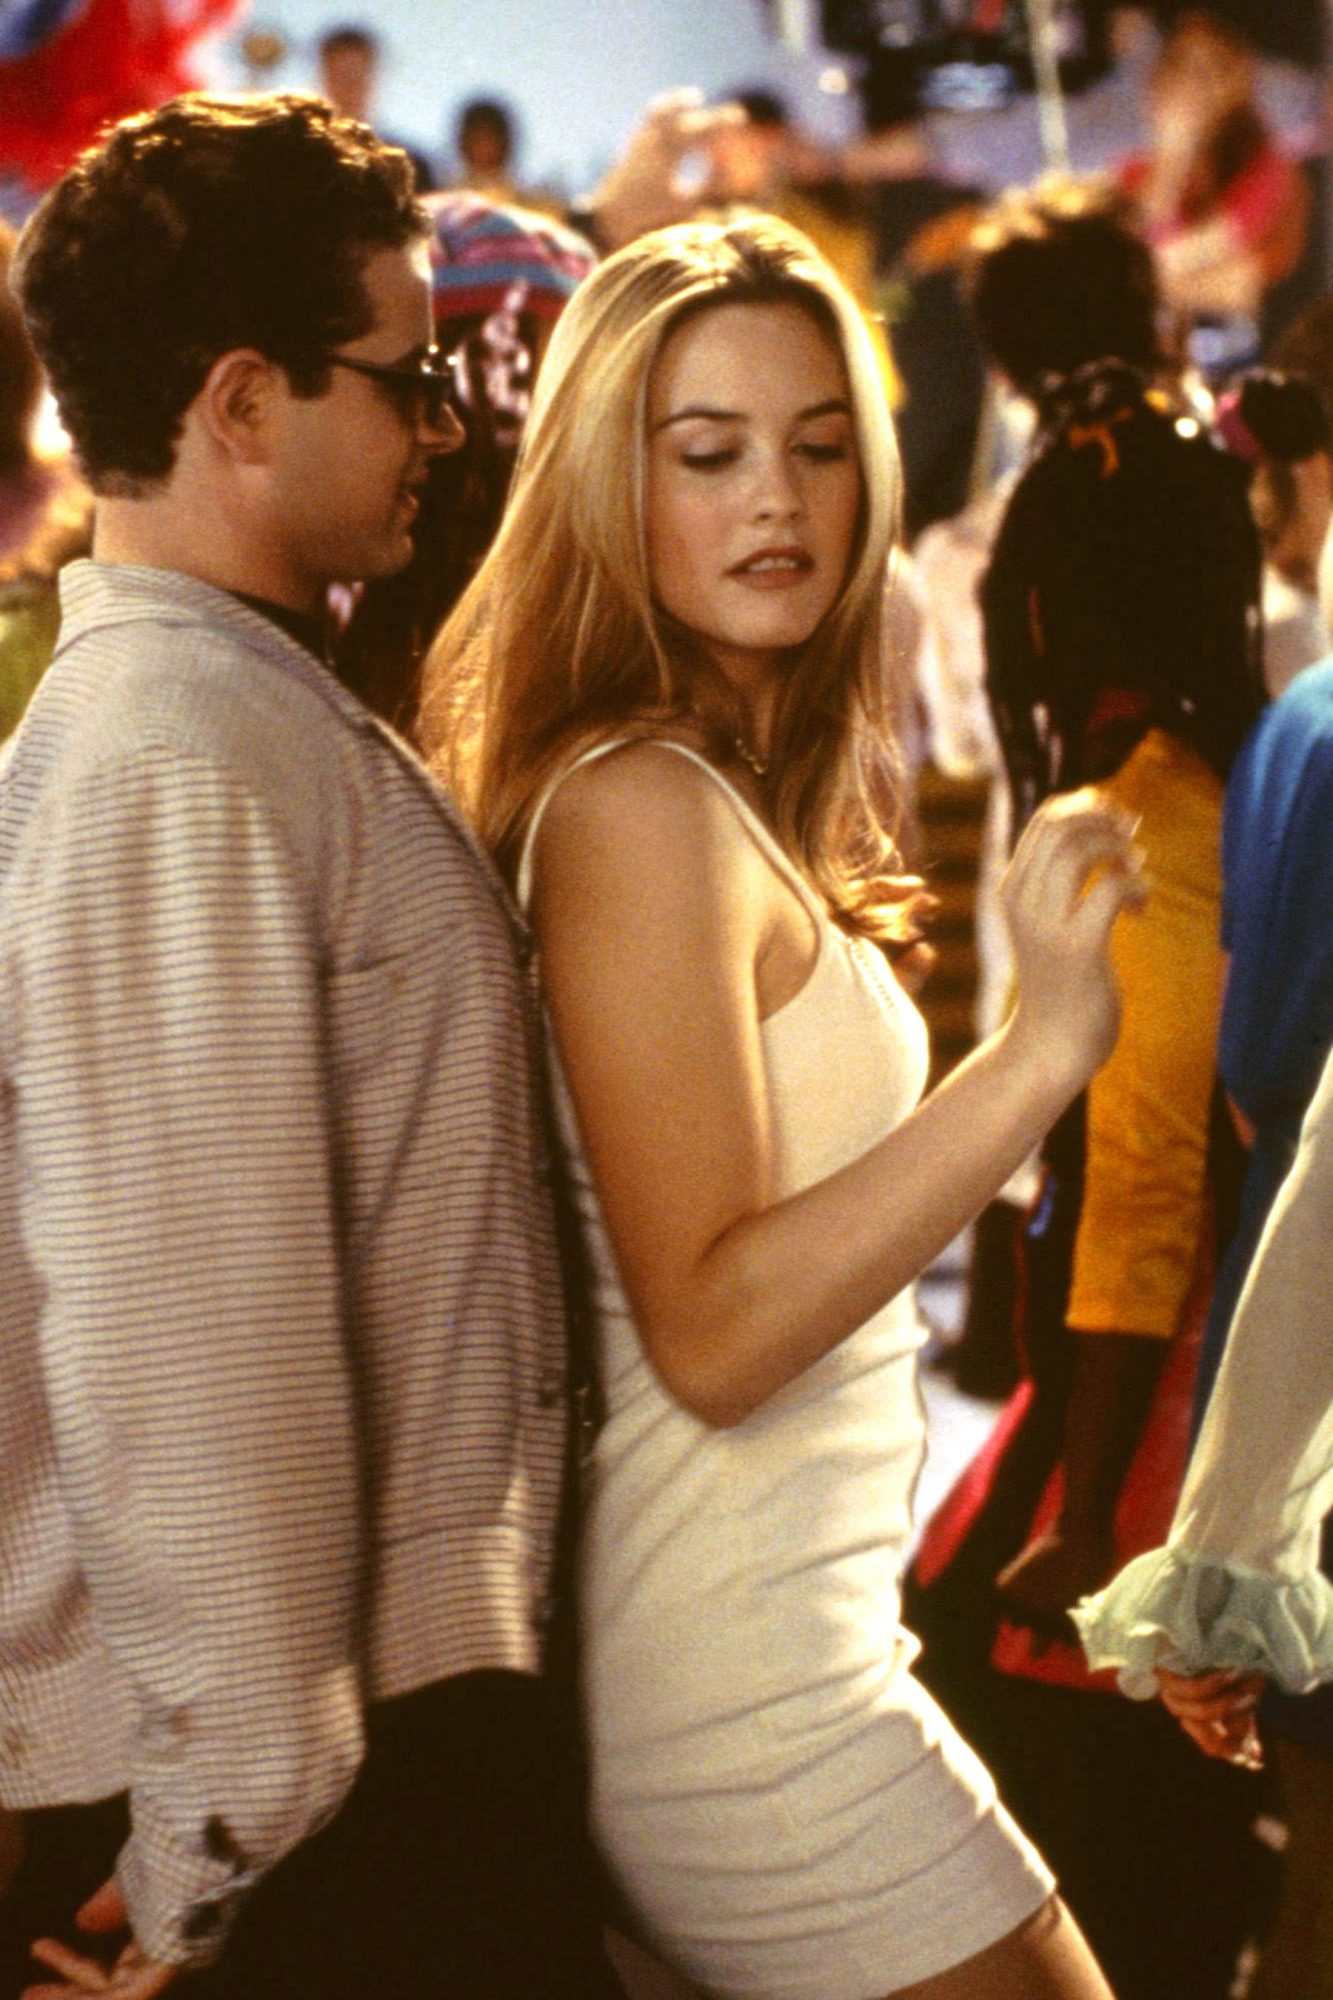 CLUELESS, Justin Walker, Alicia Silverstone, 1995, (c) Paramount/courtesy Everett Collection